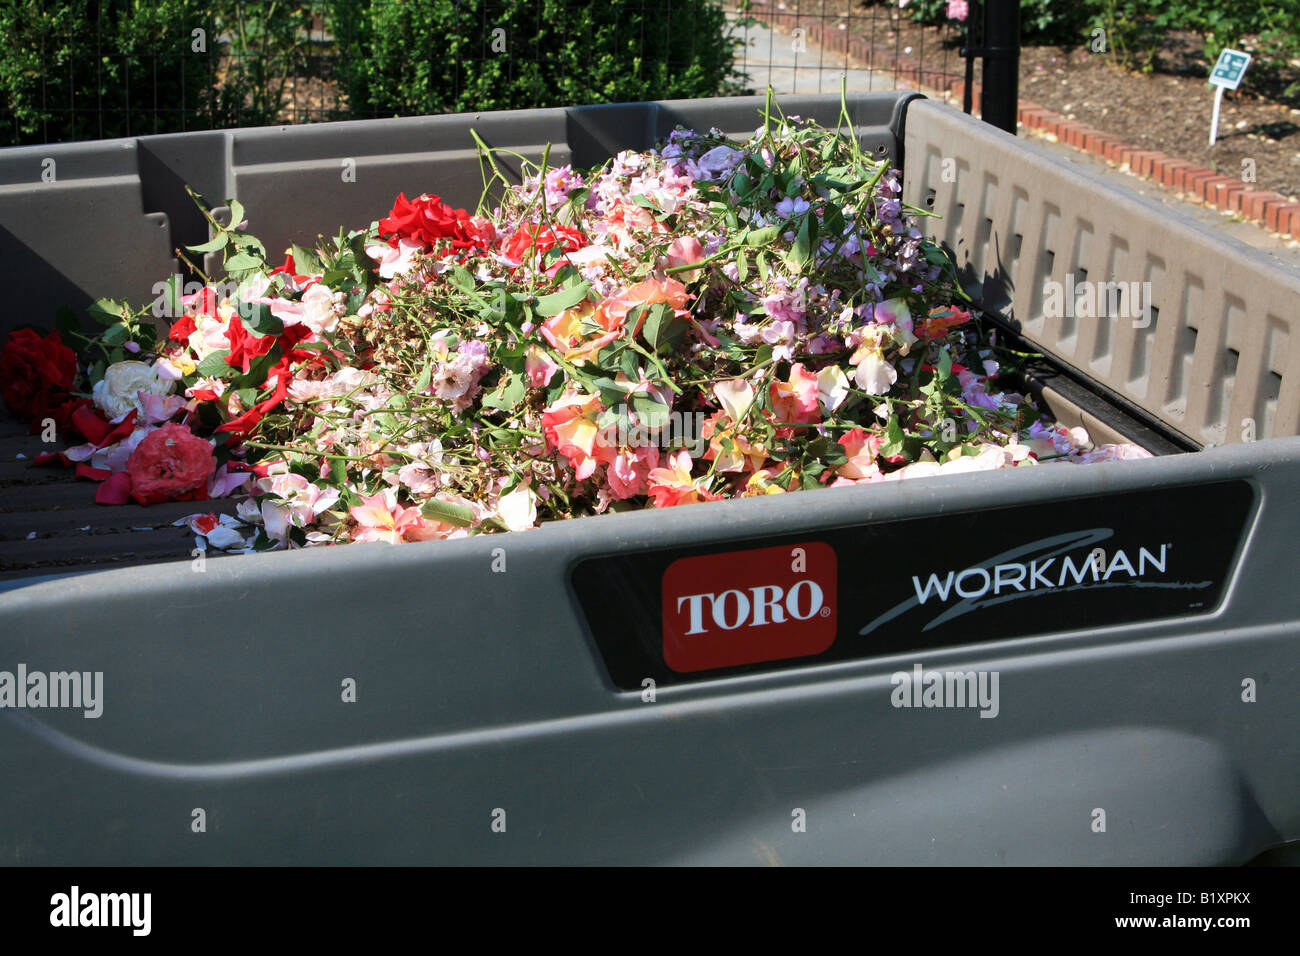 The bed of a garden cart filled with rose clippings. - Stock Image